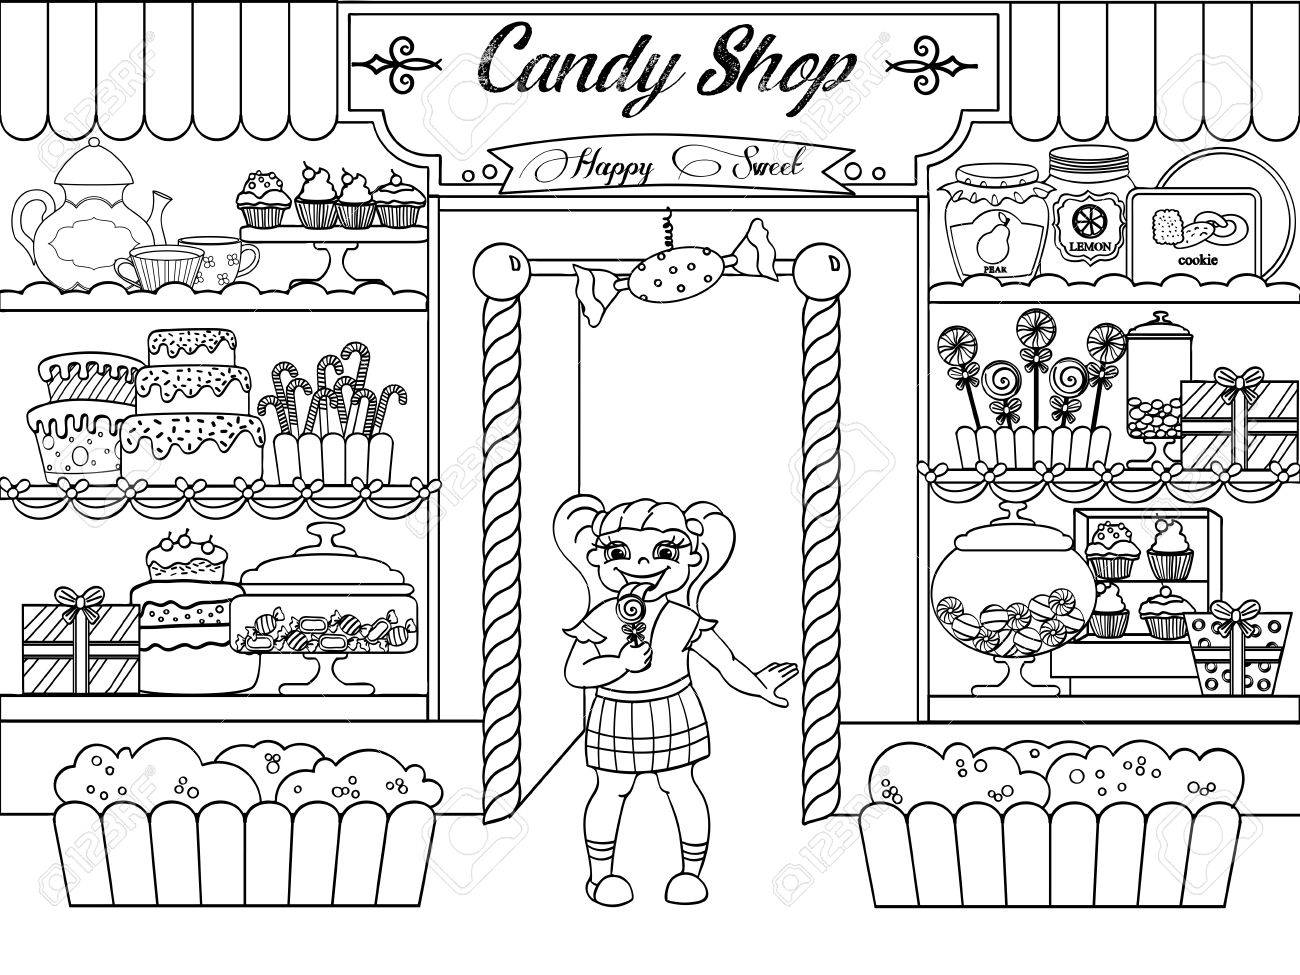 Kids Coloring Vector Girl In Candy Shop Royalty Free Cliparts Vectors And Stock Illustration Image 74903537